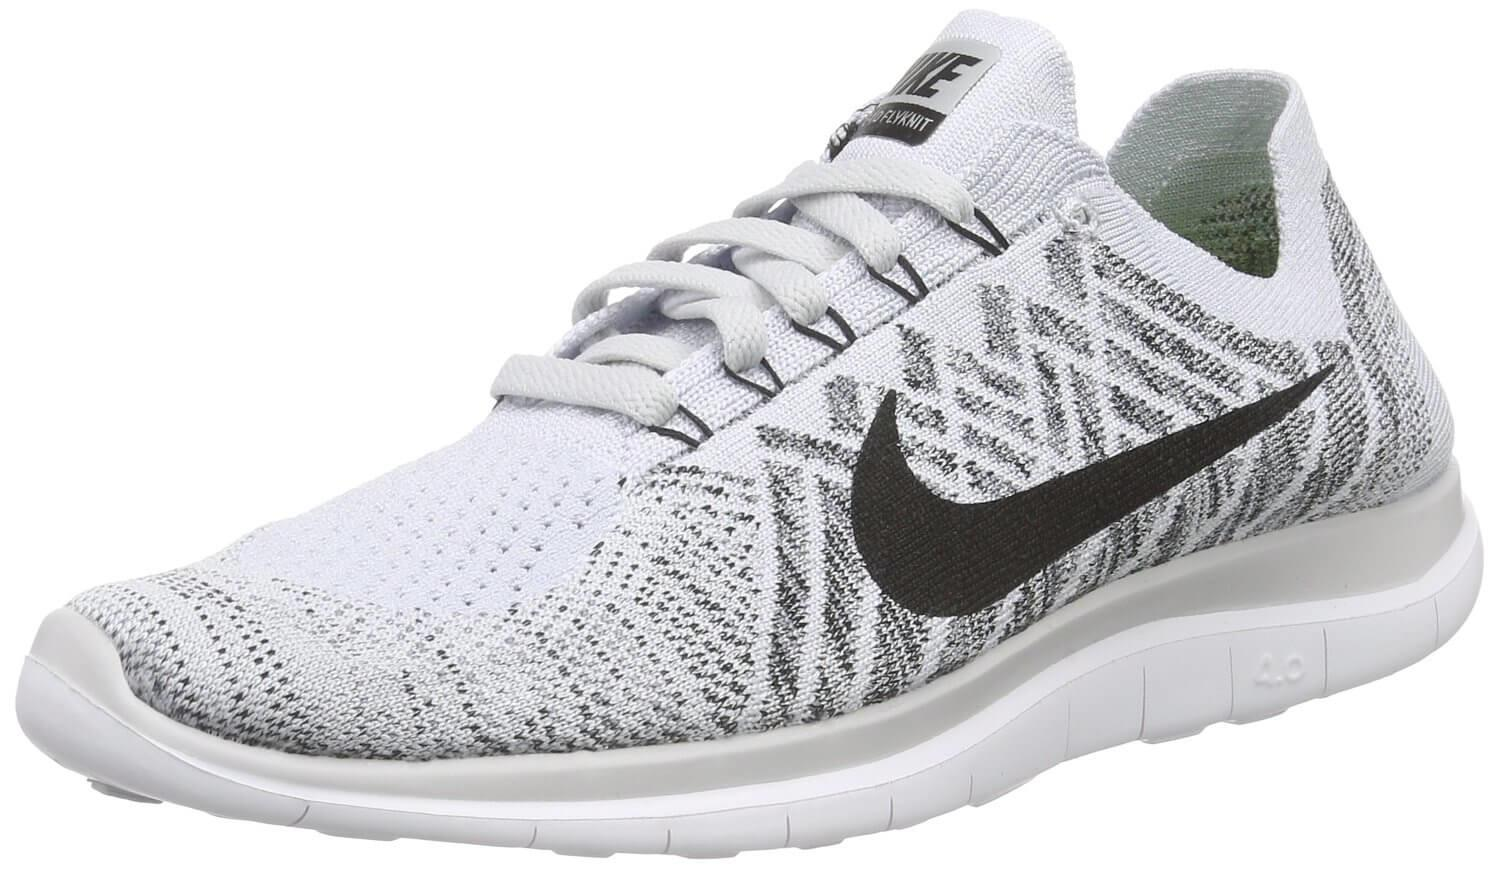 buy online 98c23 3f453 Nike Free Flyknit 4.0 Review - Buy or Not in Mar 2019